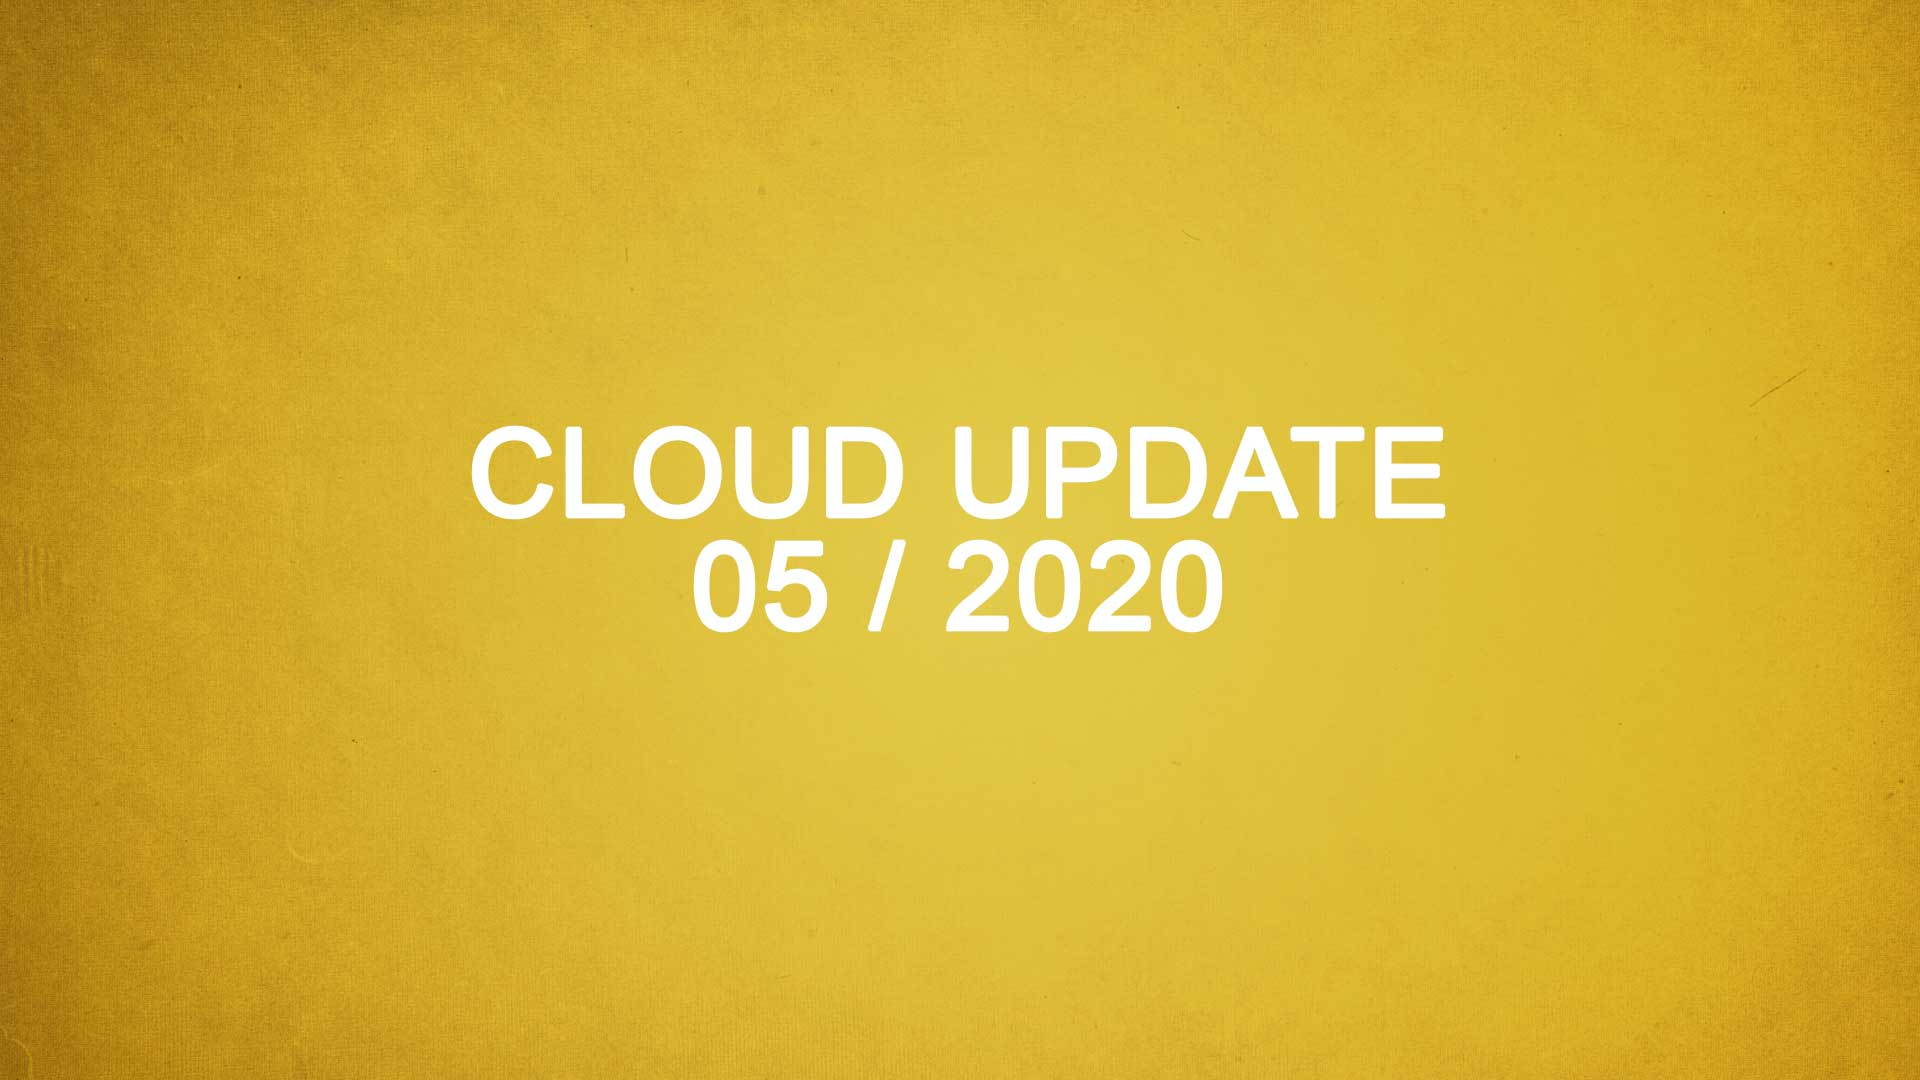 Titelbild Cloud Update 05 / 2020